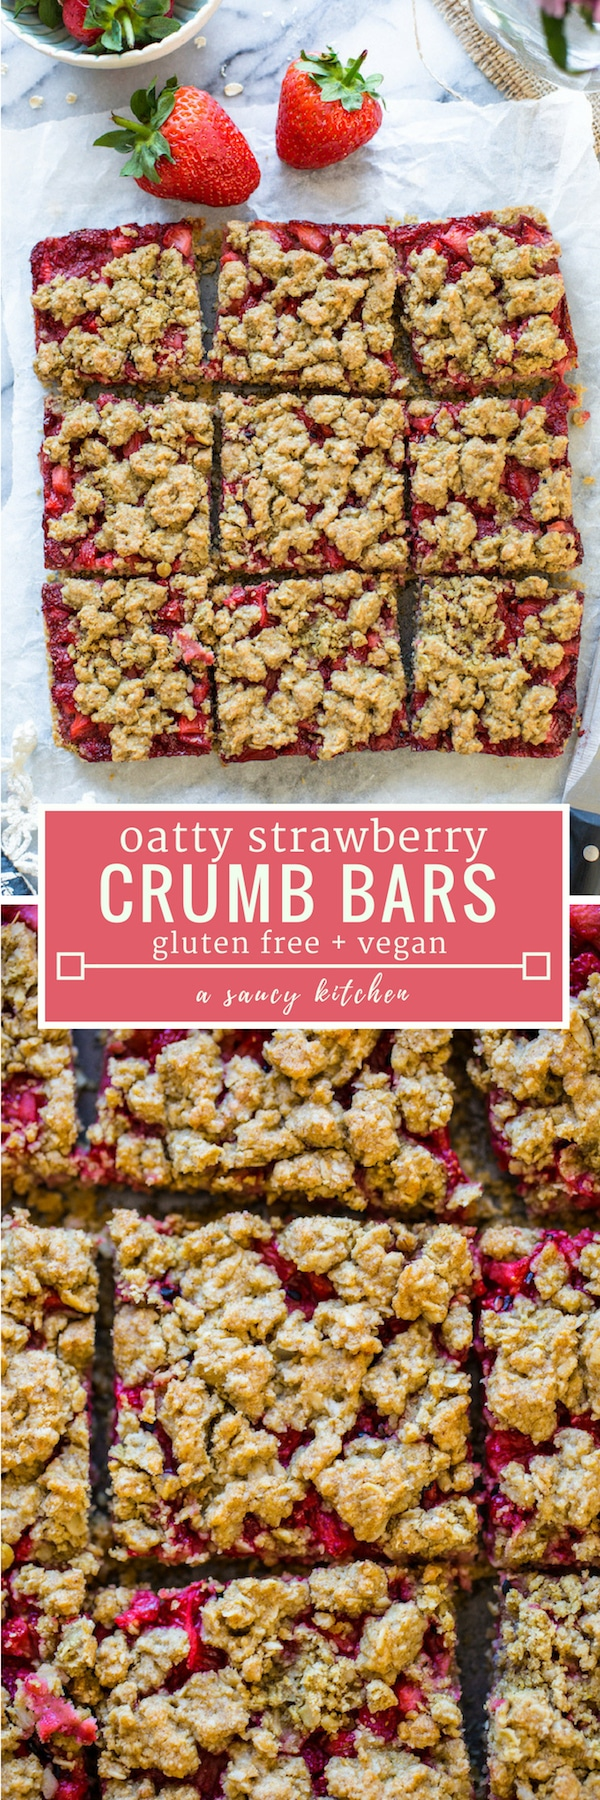 Simple, oatty Strawberry Crumb Bars spiced with a touch of cinnamon and sweetened with maple syrup to make it low FODMAp friendly   #GlutenFree + #Vegan + #NutFree #strawberrycrumble #crumbbars #summerrecipes #crumble